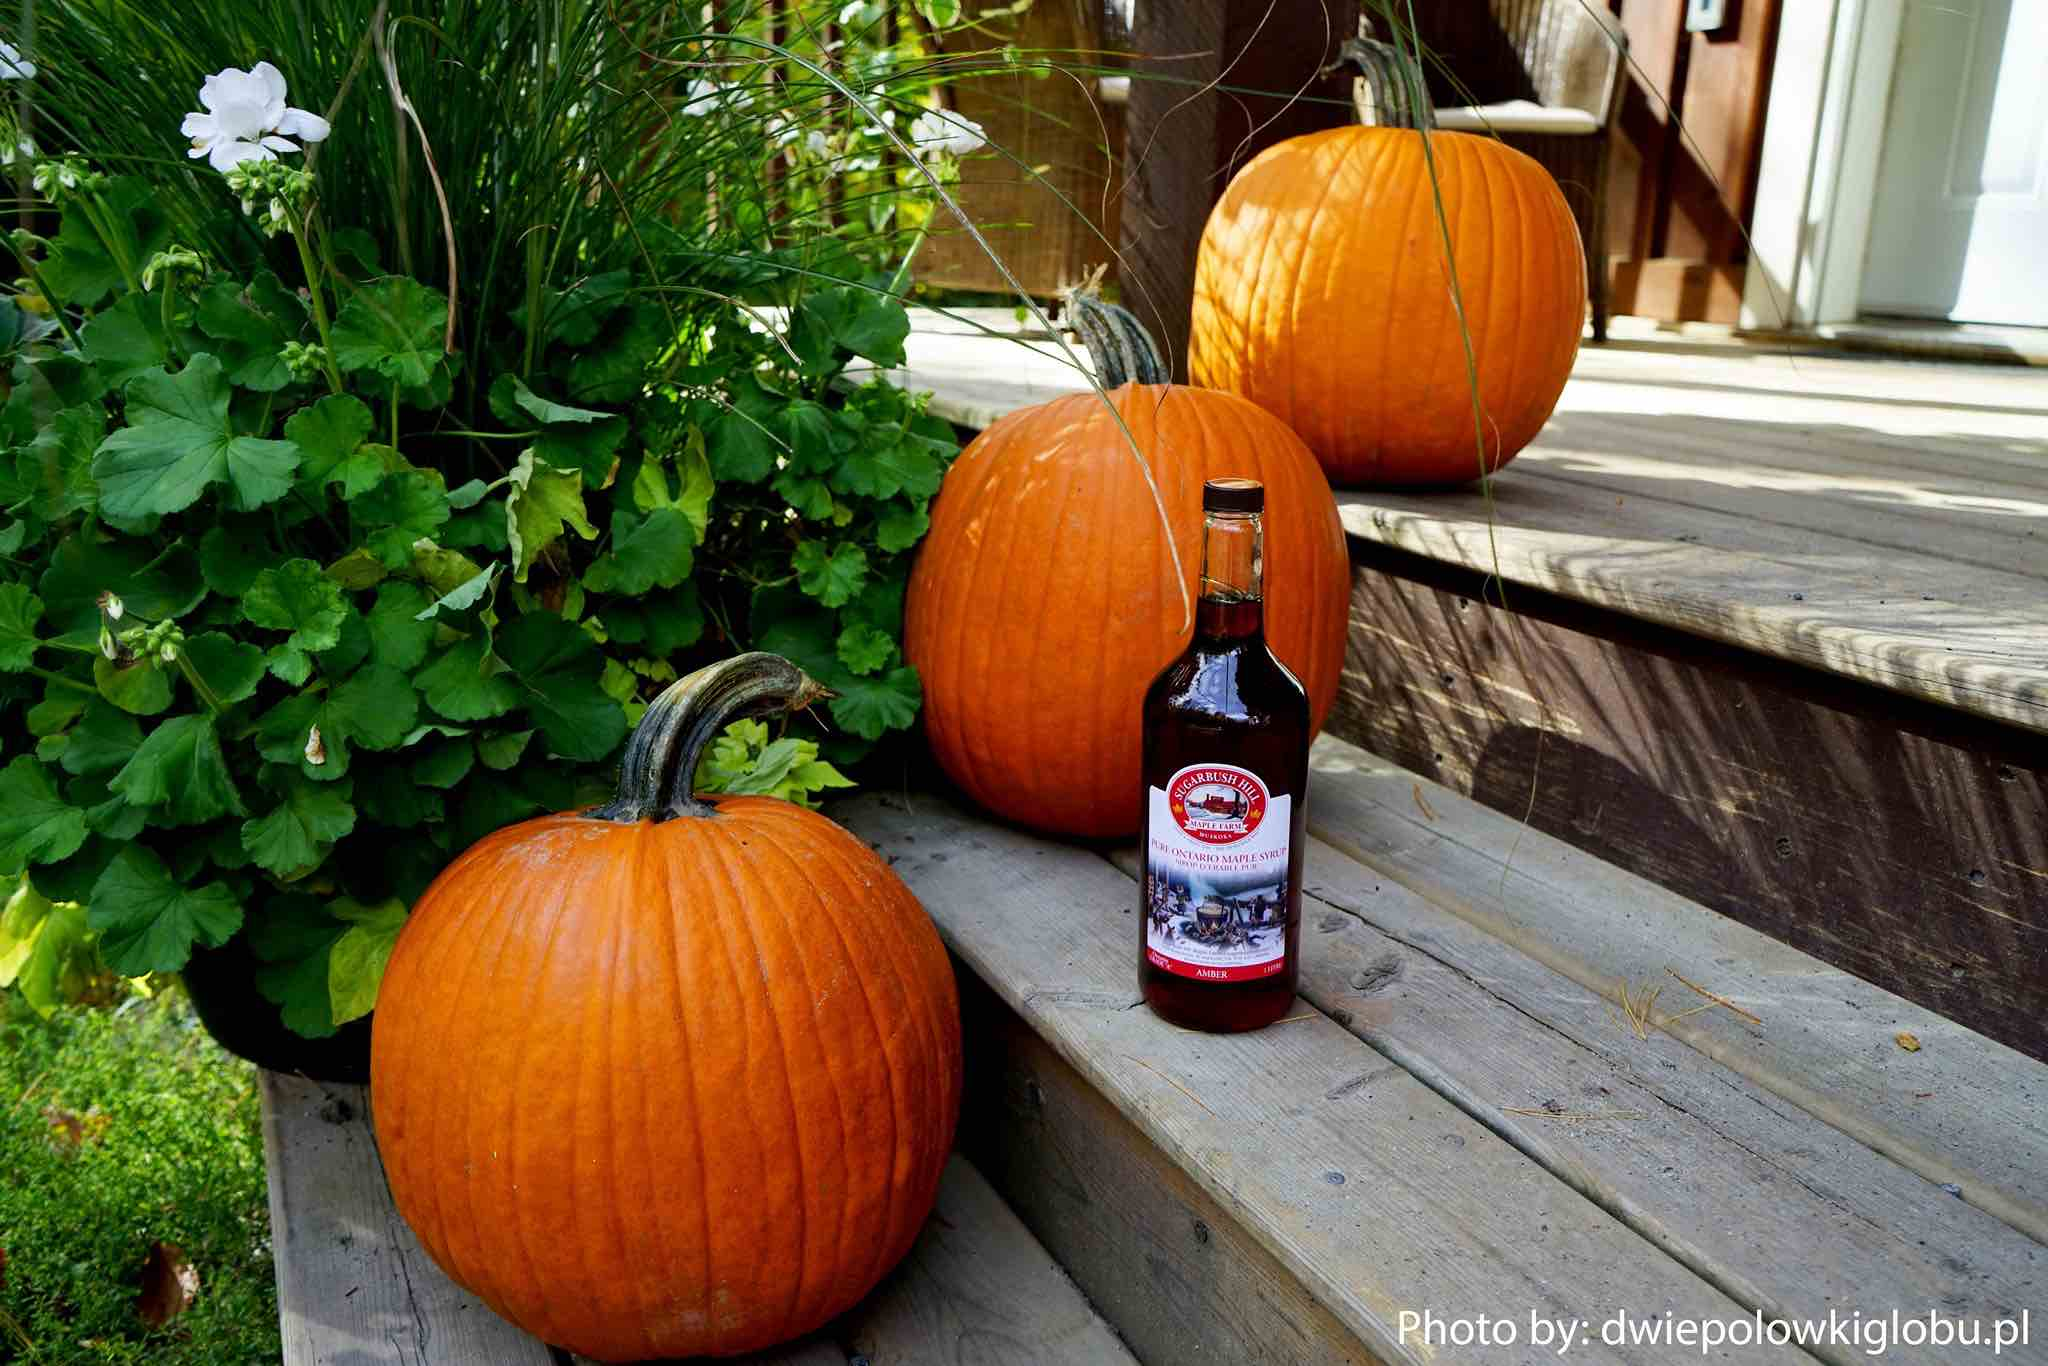 Sugarbush Hill Maple Syrup pumpkins and syrup bottle